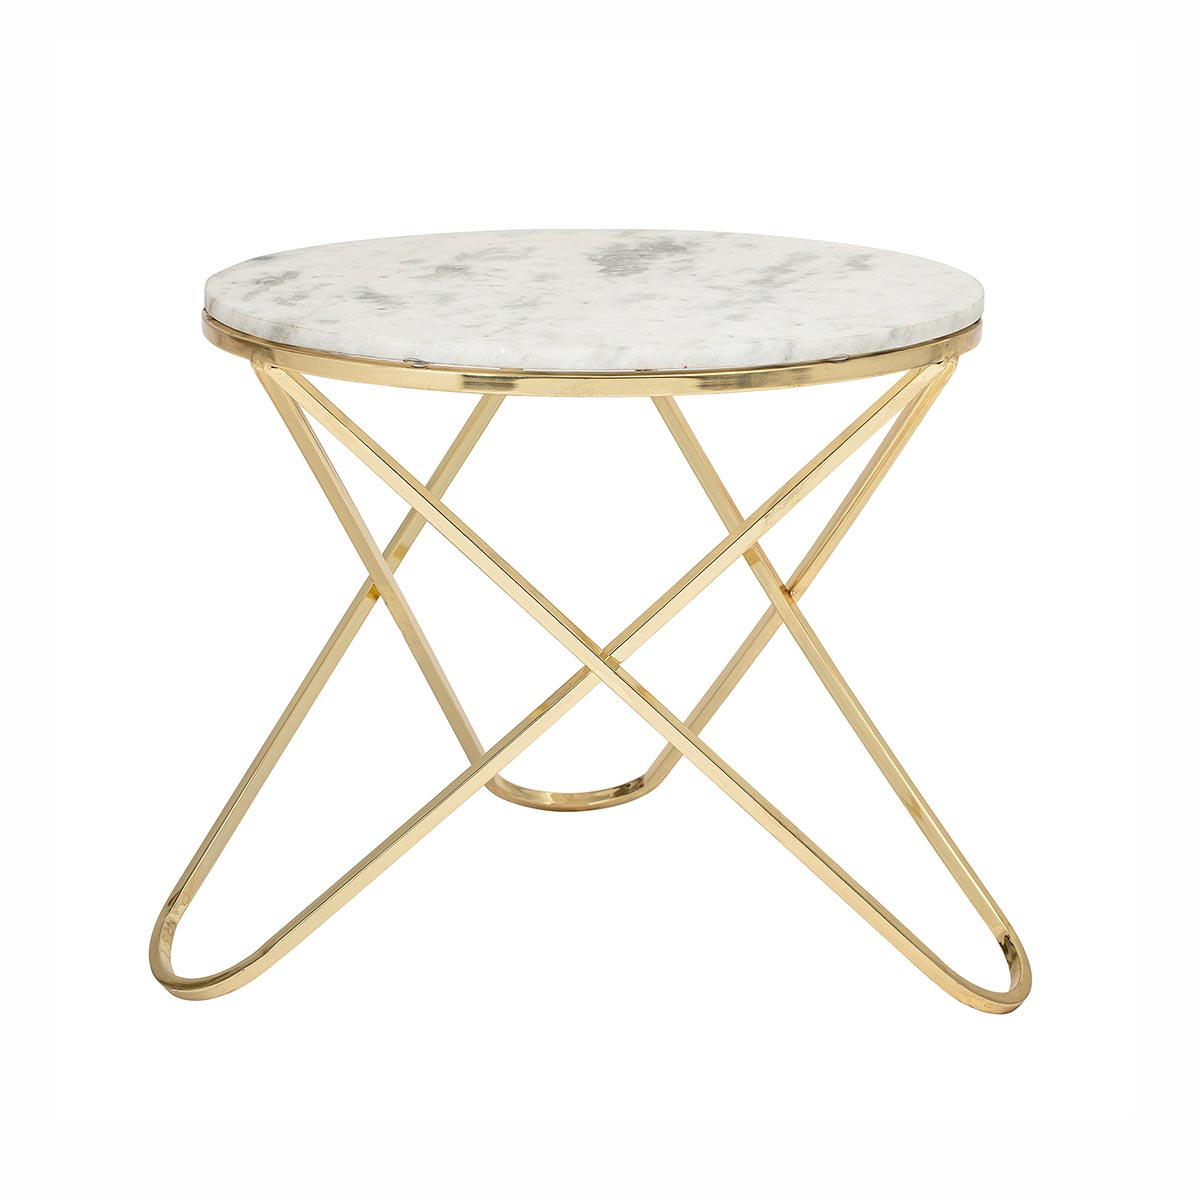 Round Marble Coffee Table With Brass Legs By Bloomingville